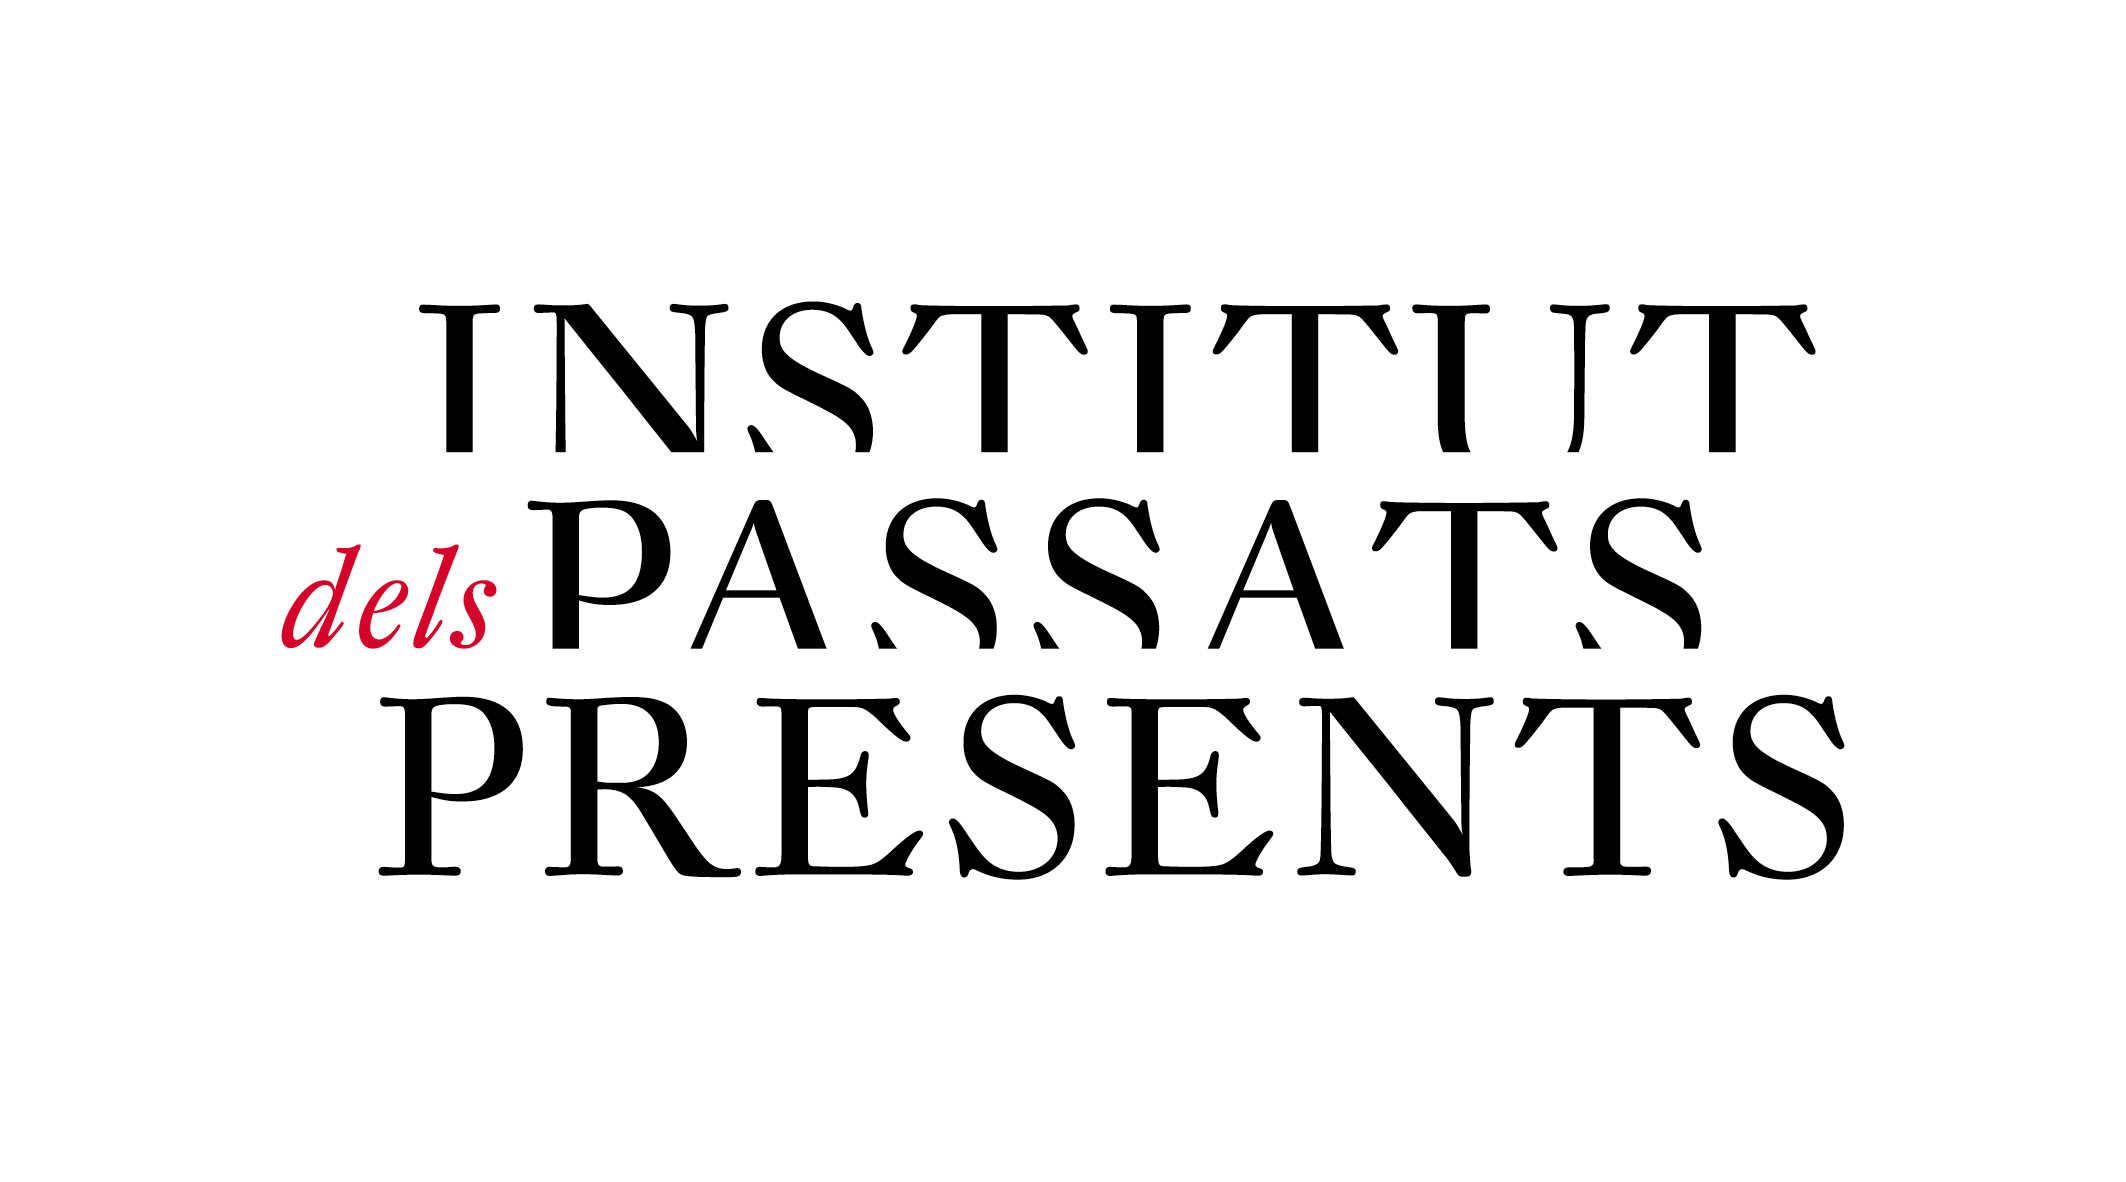 Instituto de los Pasados Presentes